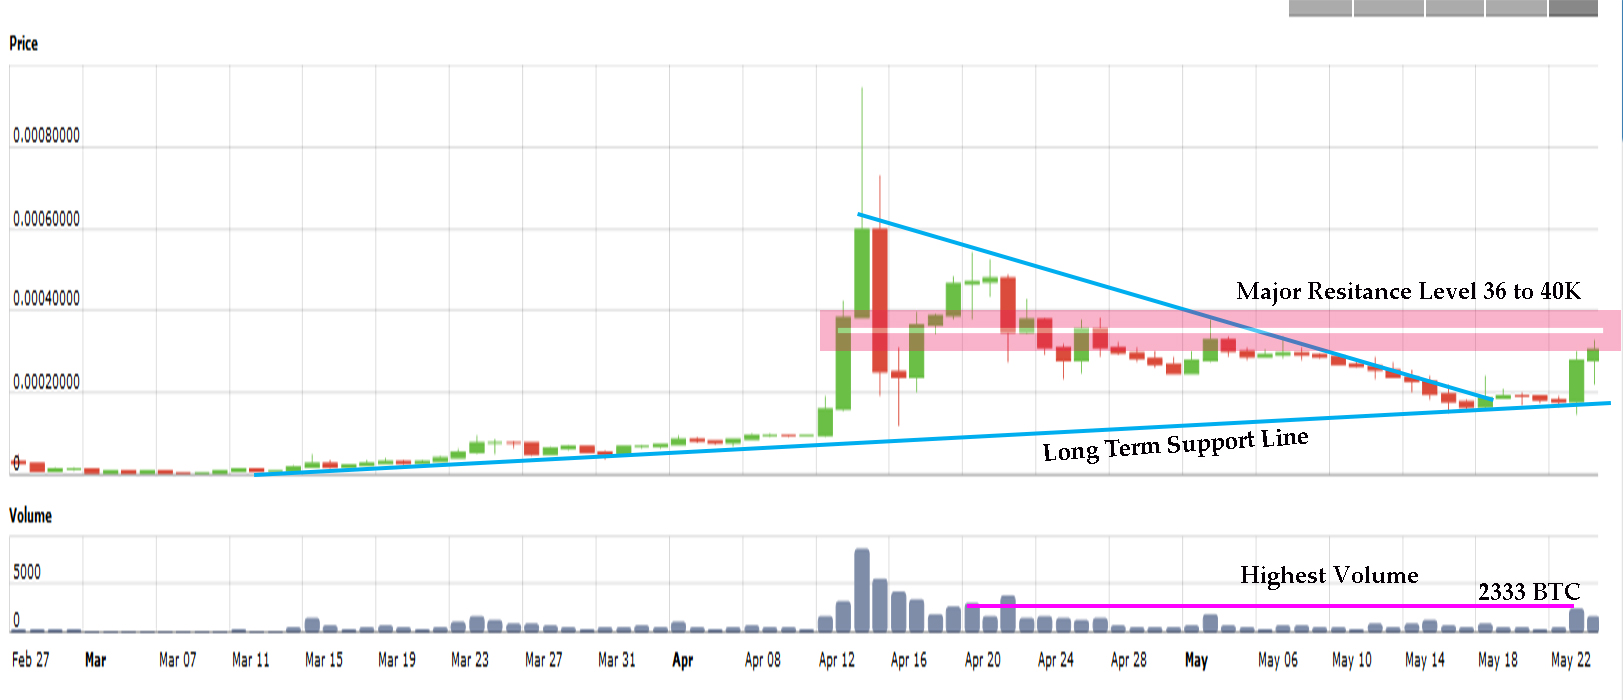 BlackCoin-Long-Term-Mintpal-Chart-May-24th-2014